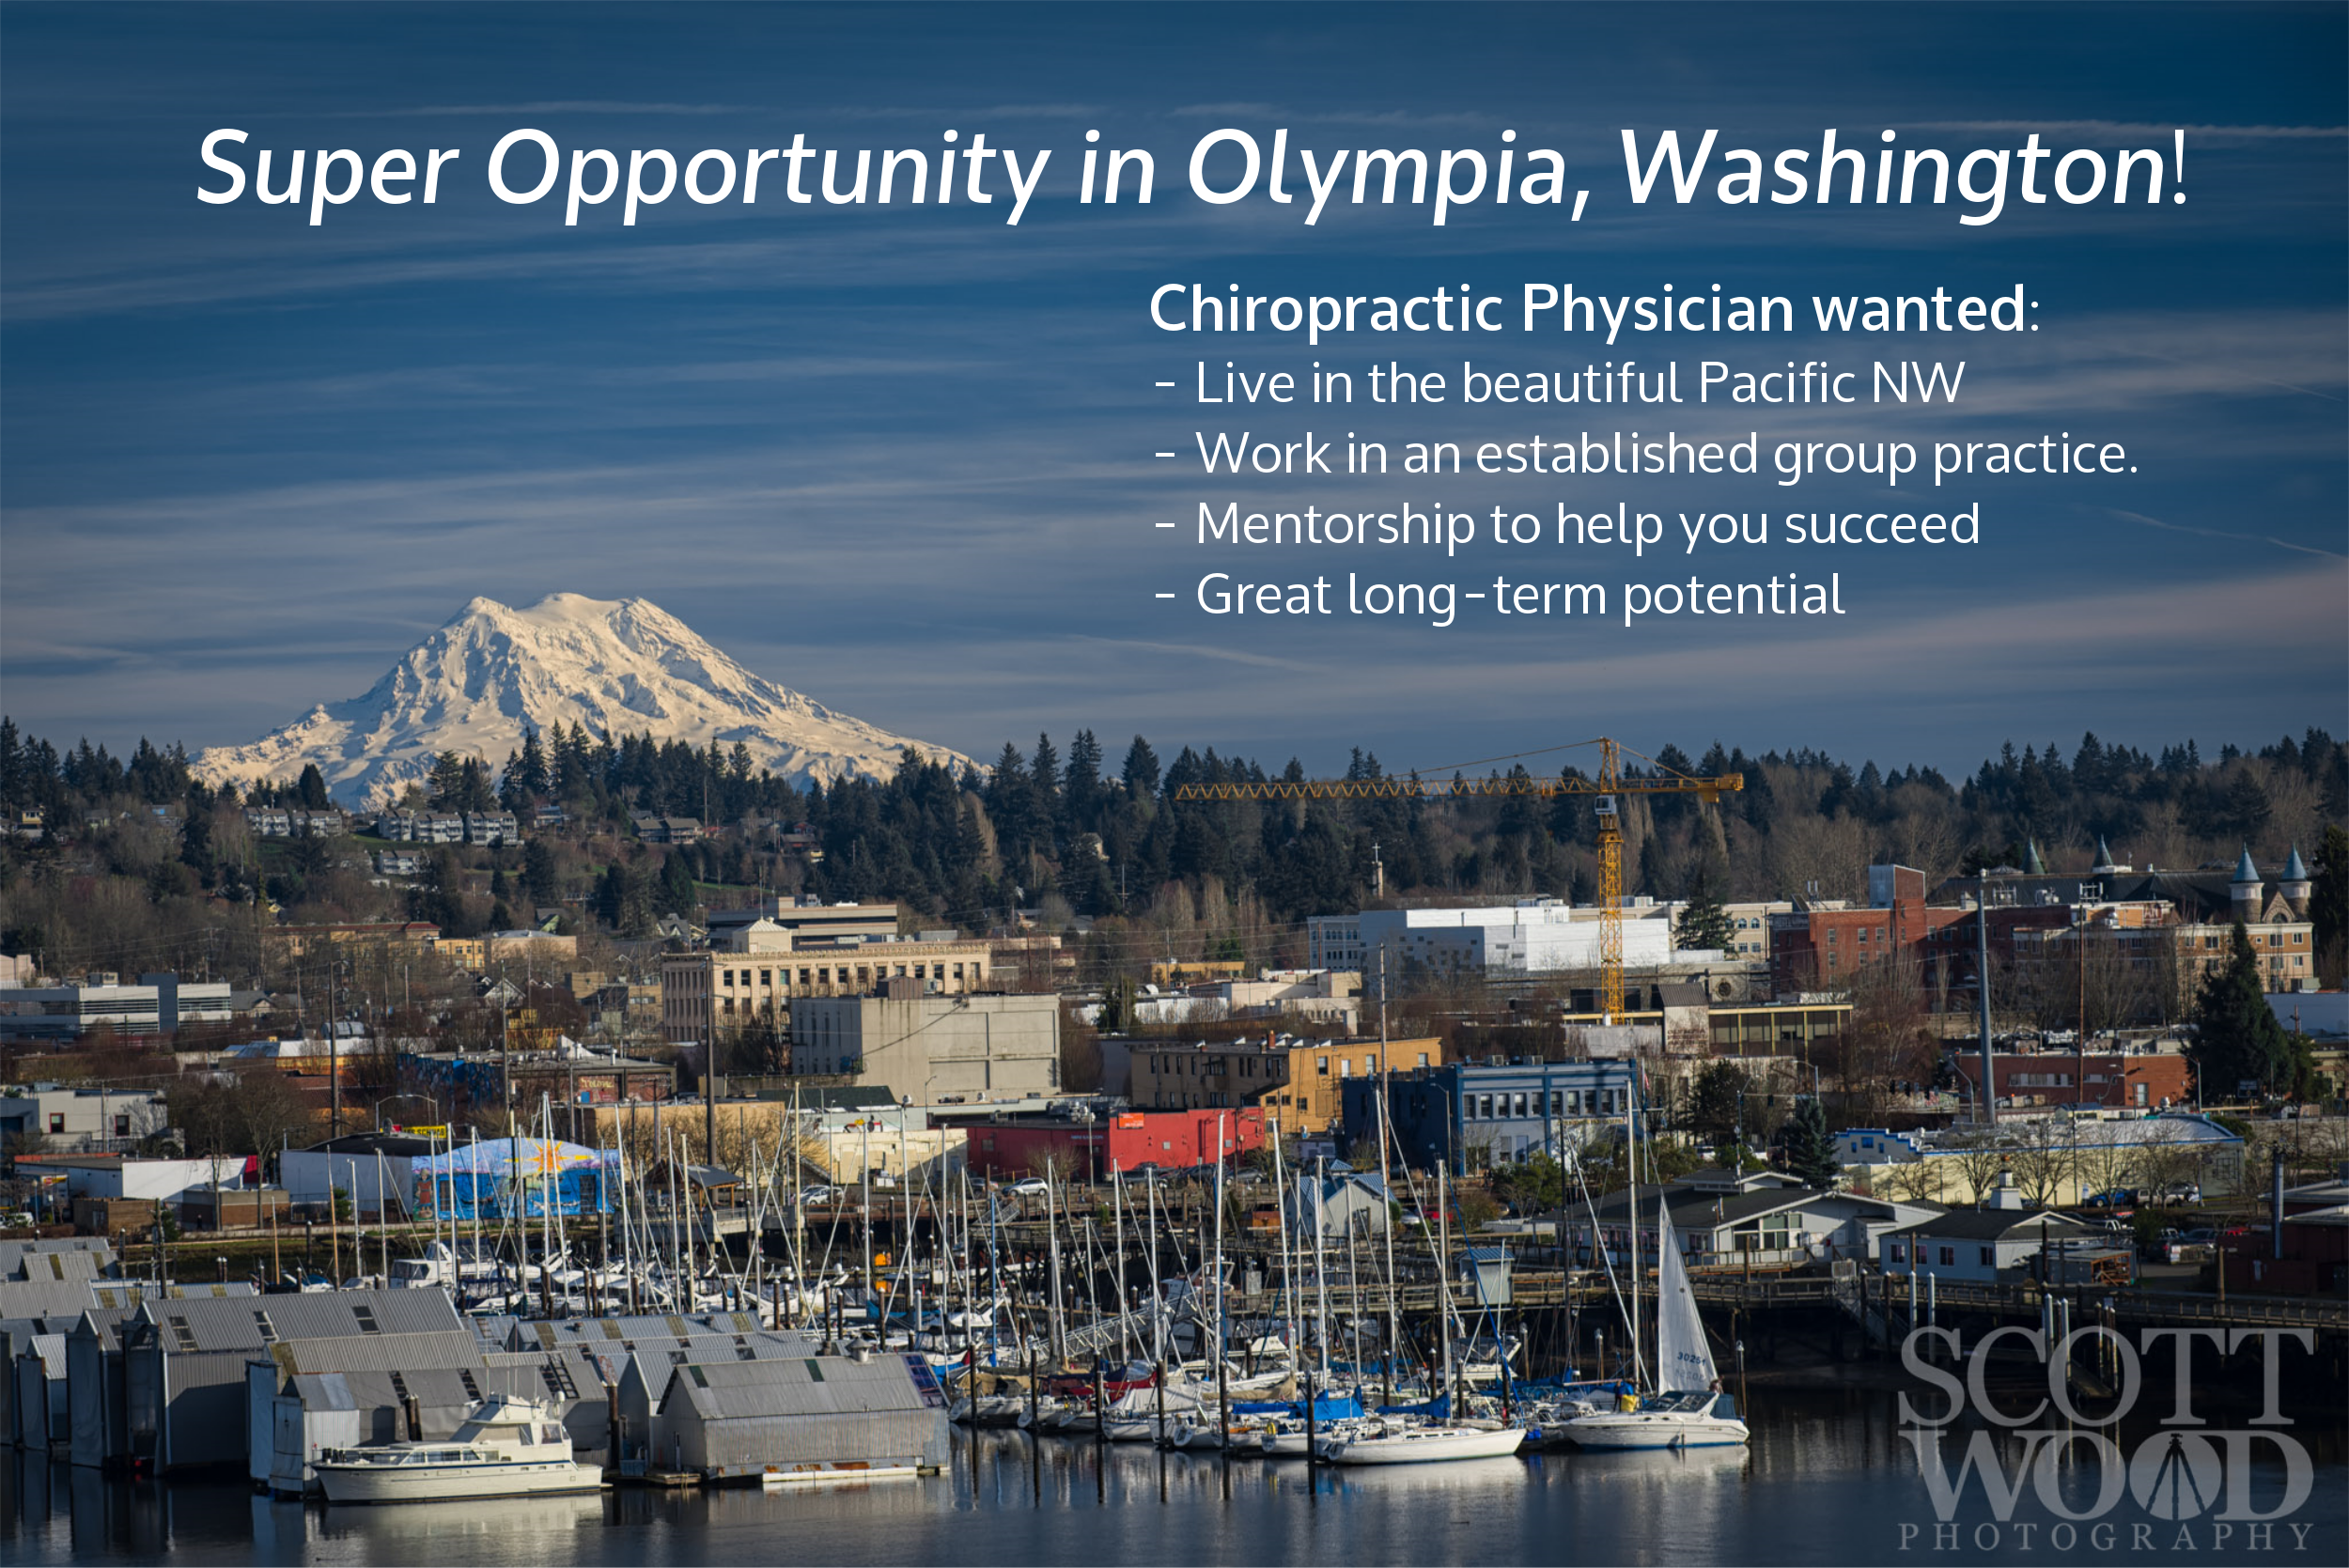 Forward-thinking, evidence-based, ethical group practice looking for an associate. Join our busy well established multi-specialty practice, in beautiful Olympia, Washington. We are looking for a hard-working, team-oriented chiropractic physician. We provide everything you need to be successful and you will have the freedom to practice how you want. This is a great opportunity for someone just starting into practice, or an established doctor who is tired of running their own business.   Email CV to Kelly@TumwaterChiroCenter.com   ______________________________________________________________________________________________________________________